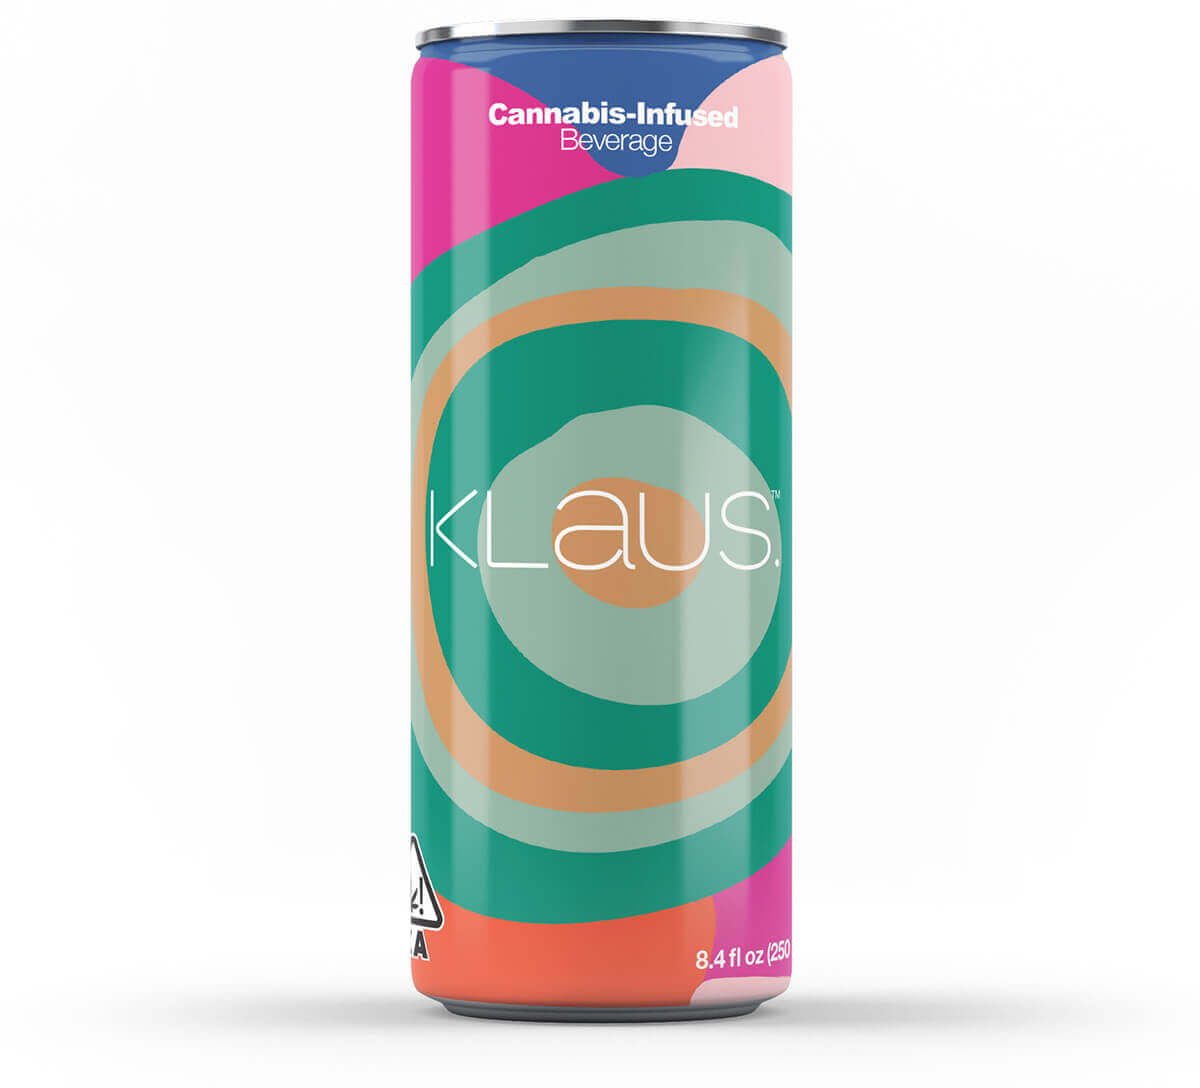 Klaus Cannabis-infused beverages